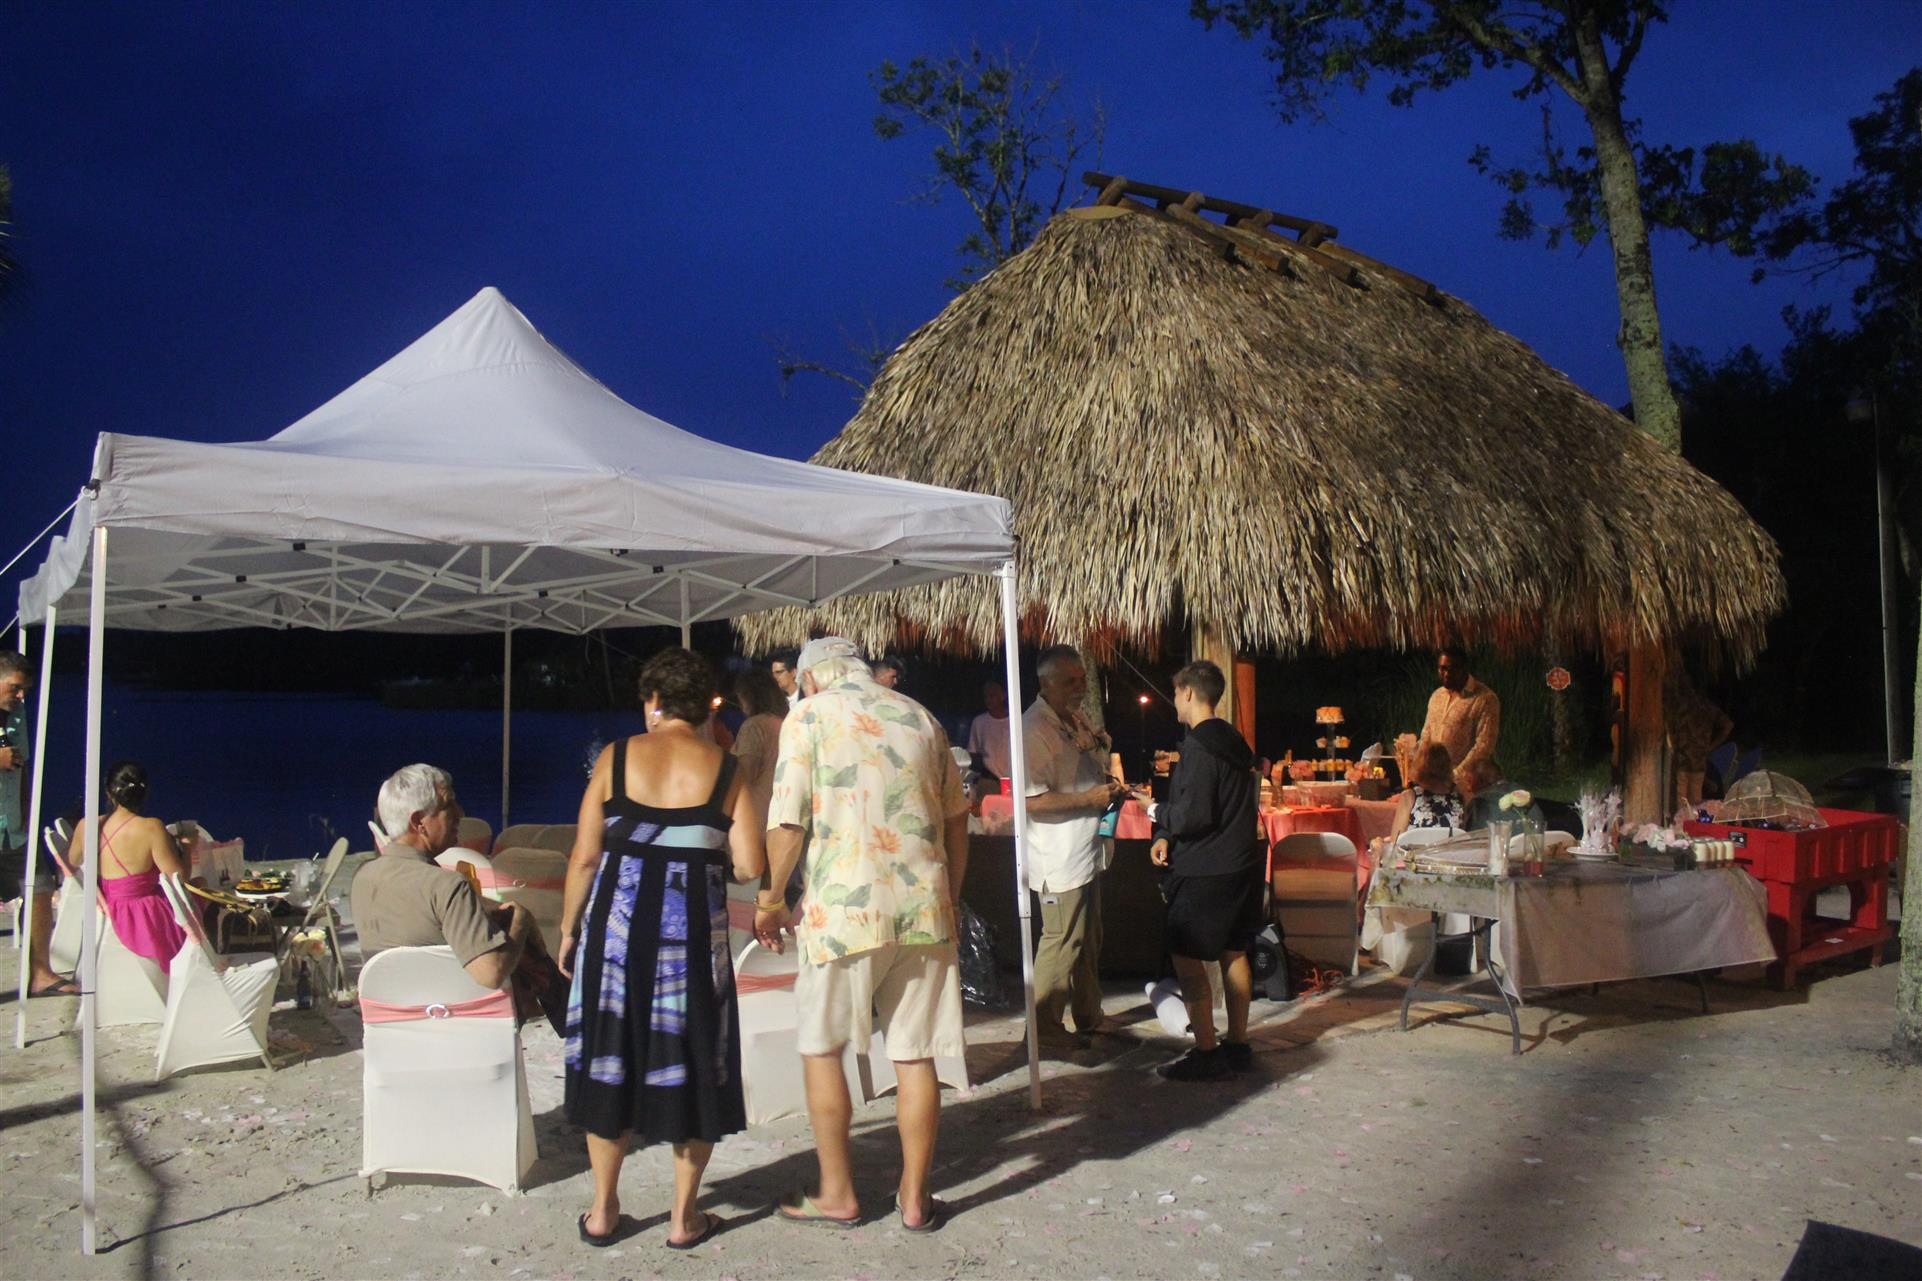 smaller tiki hut area with people enjoying food and drinks.